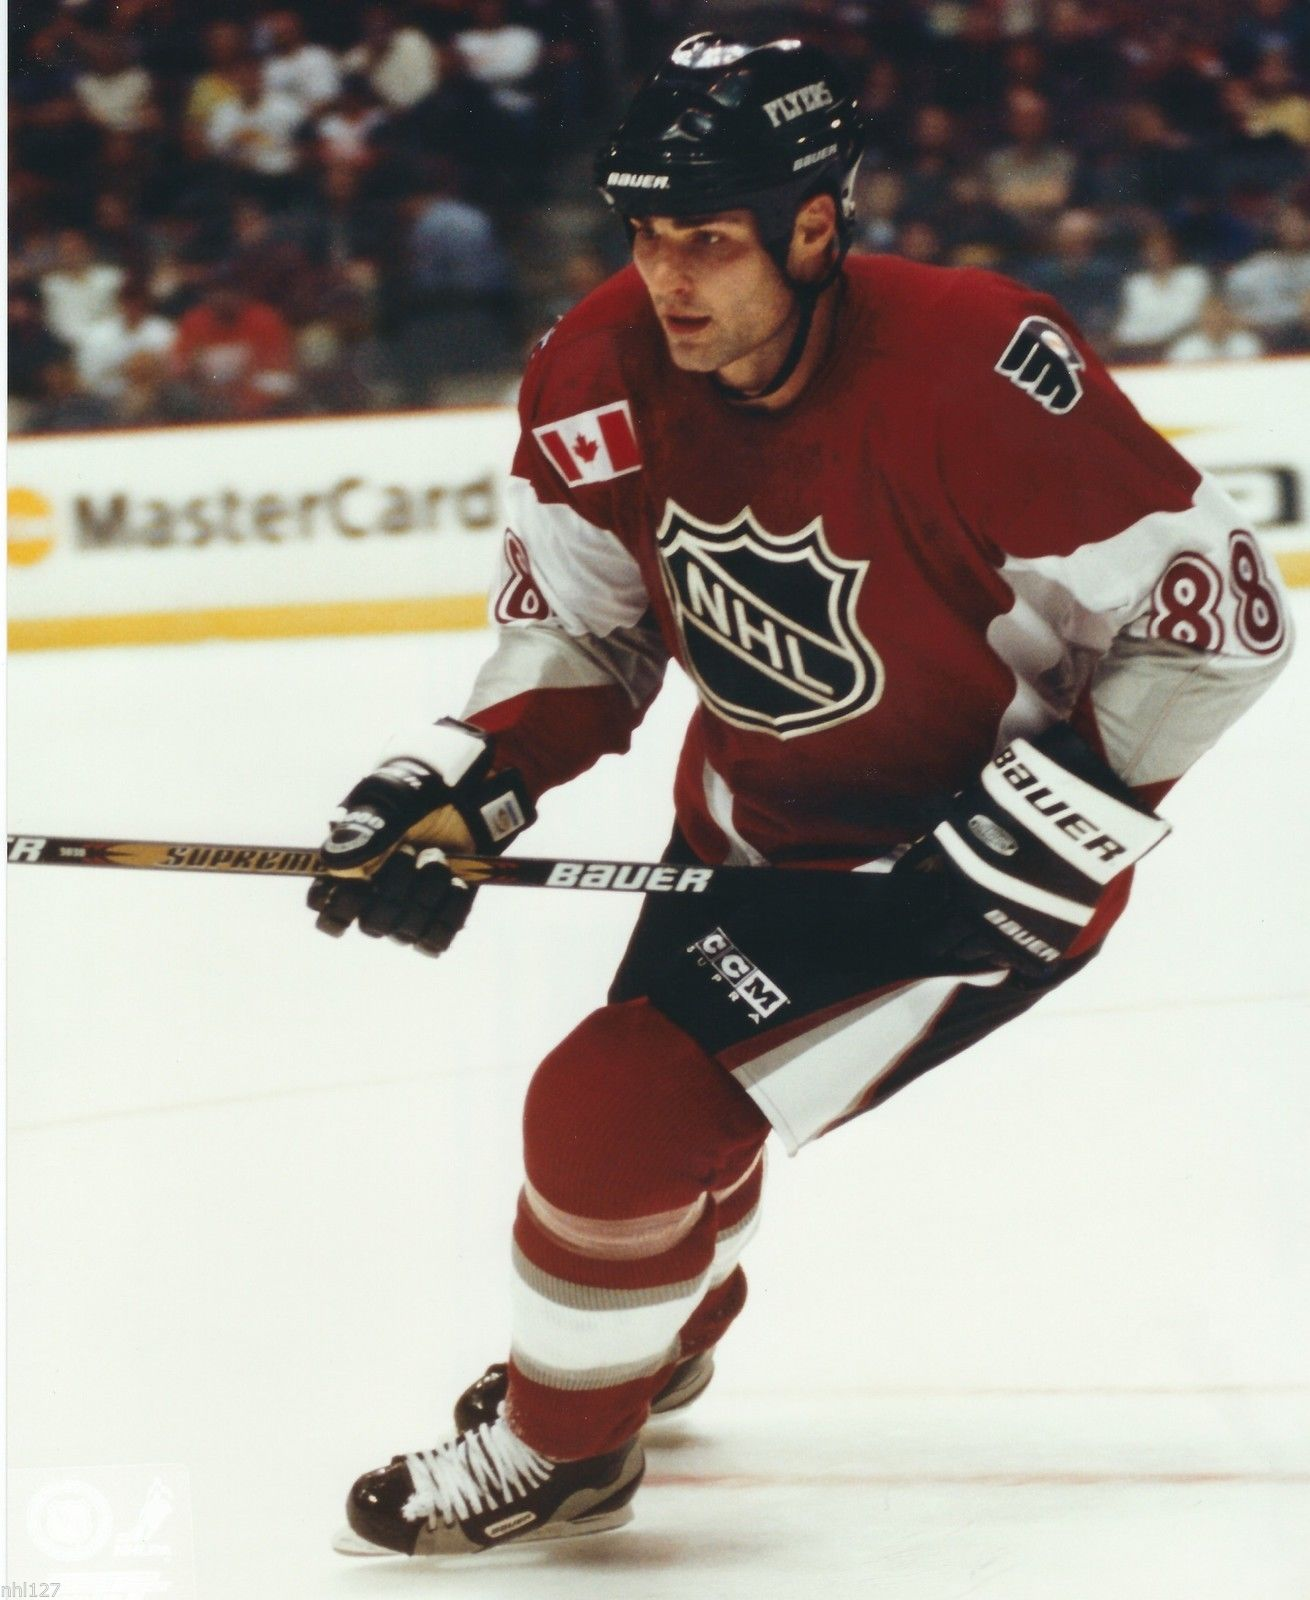 1998 Eric Lindros NHL All Star Game.JPG